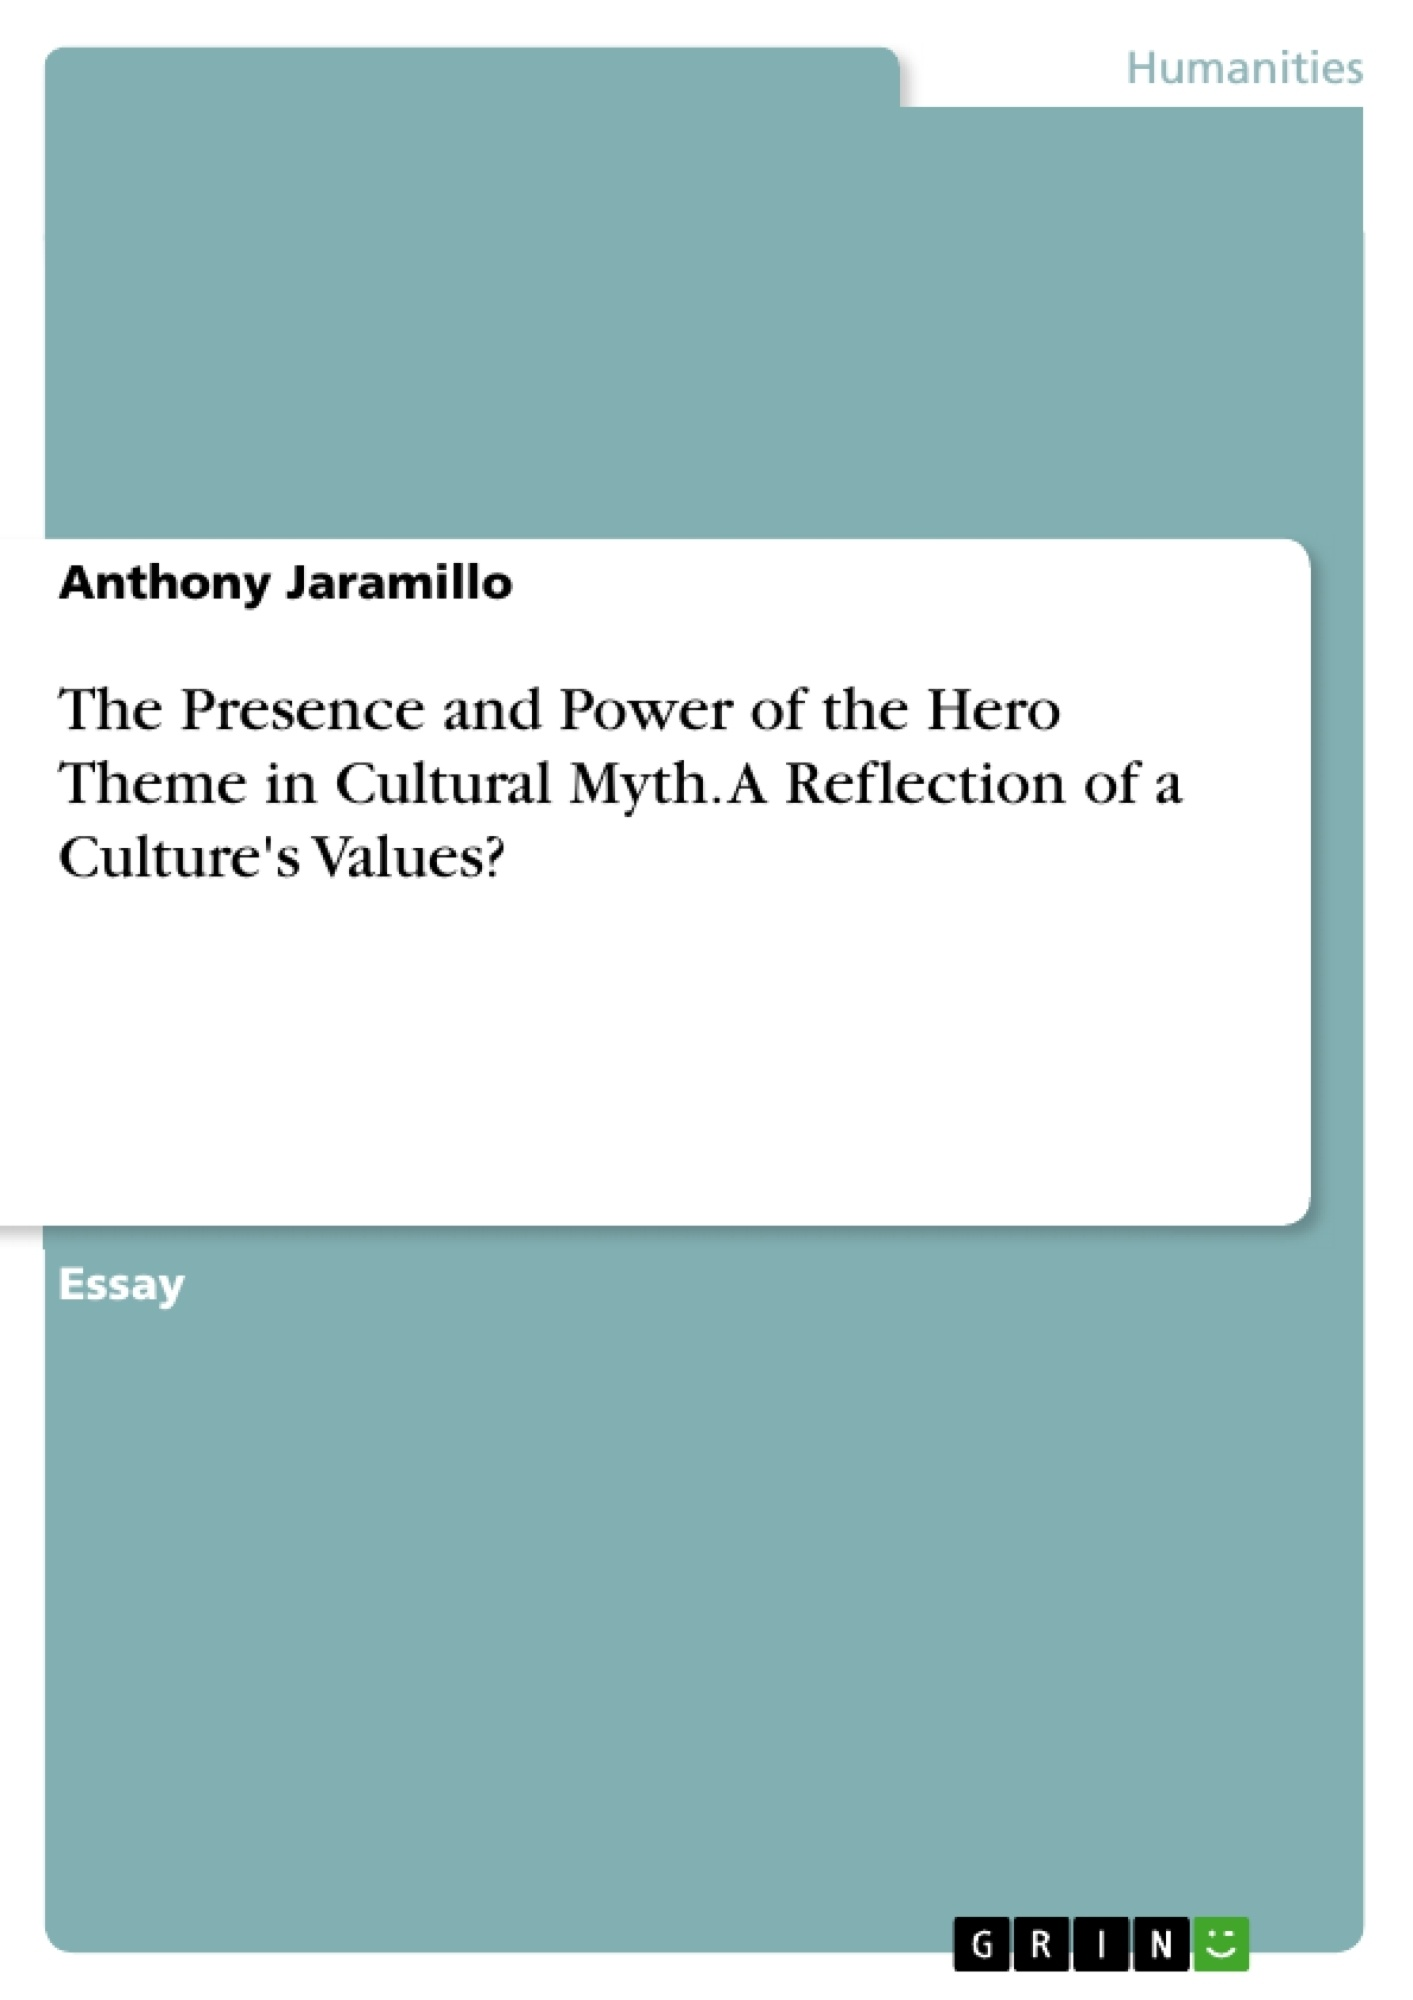 Title: The Presence and Power of the Hero Theme in Cultural Myth. A Reflection of a Culture's Values?